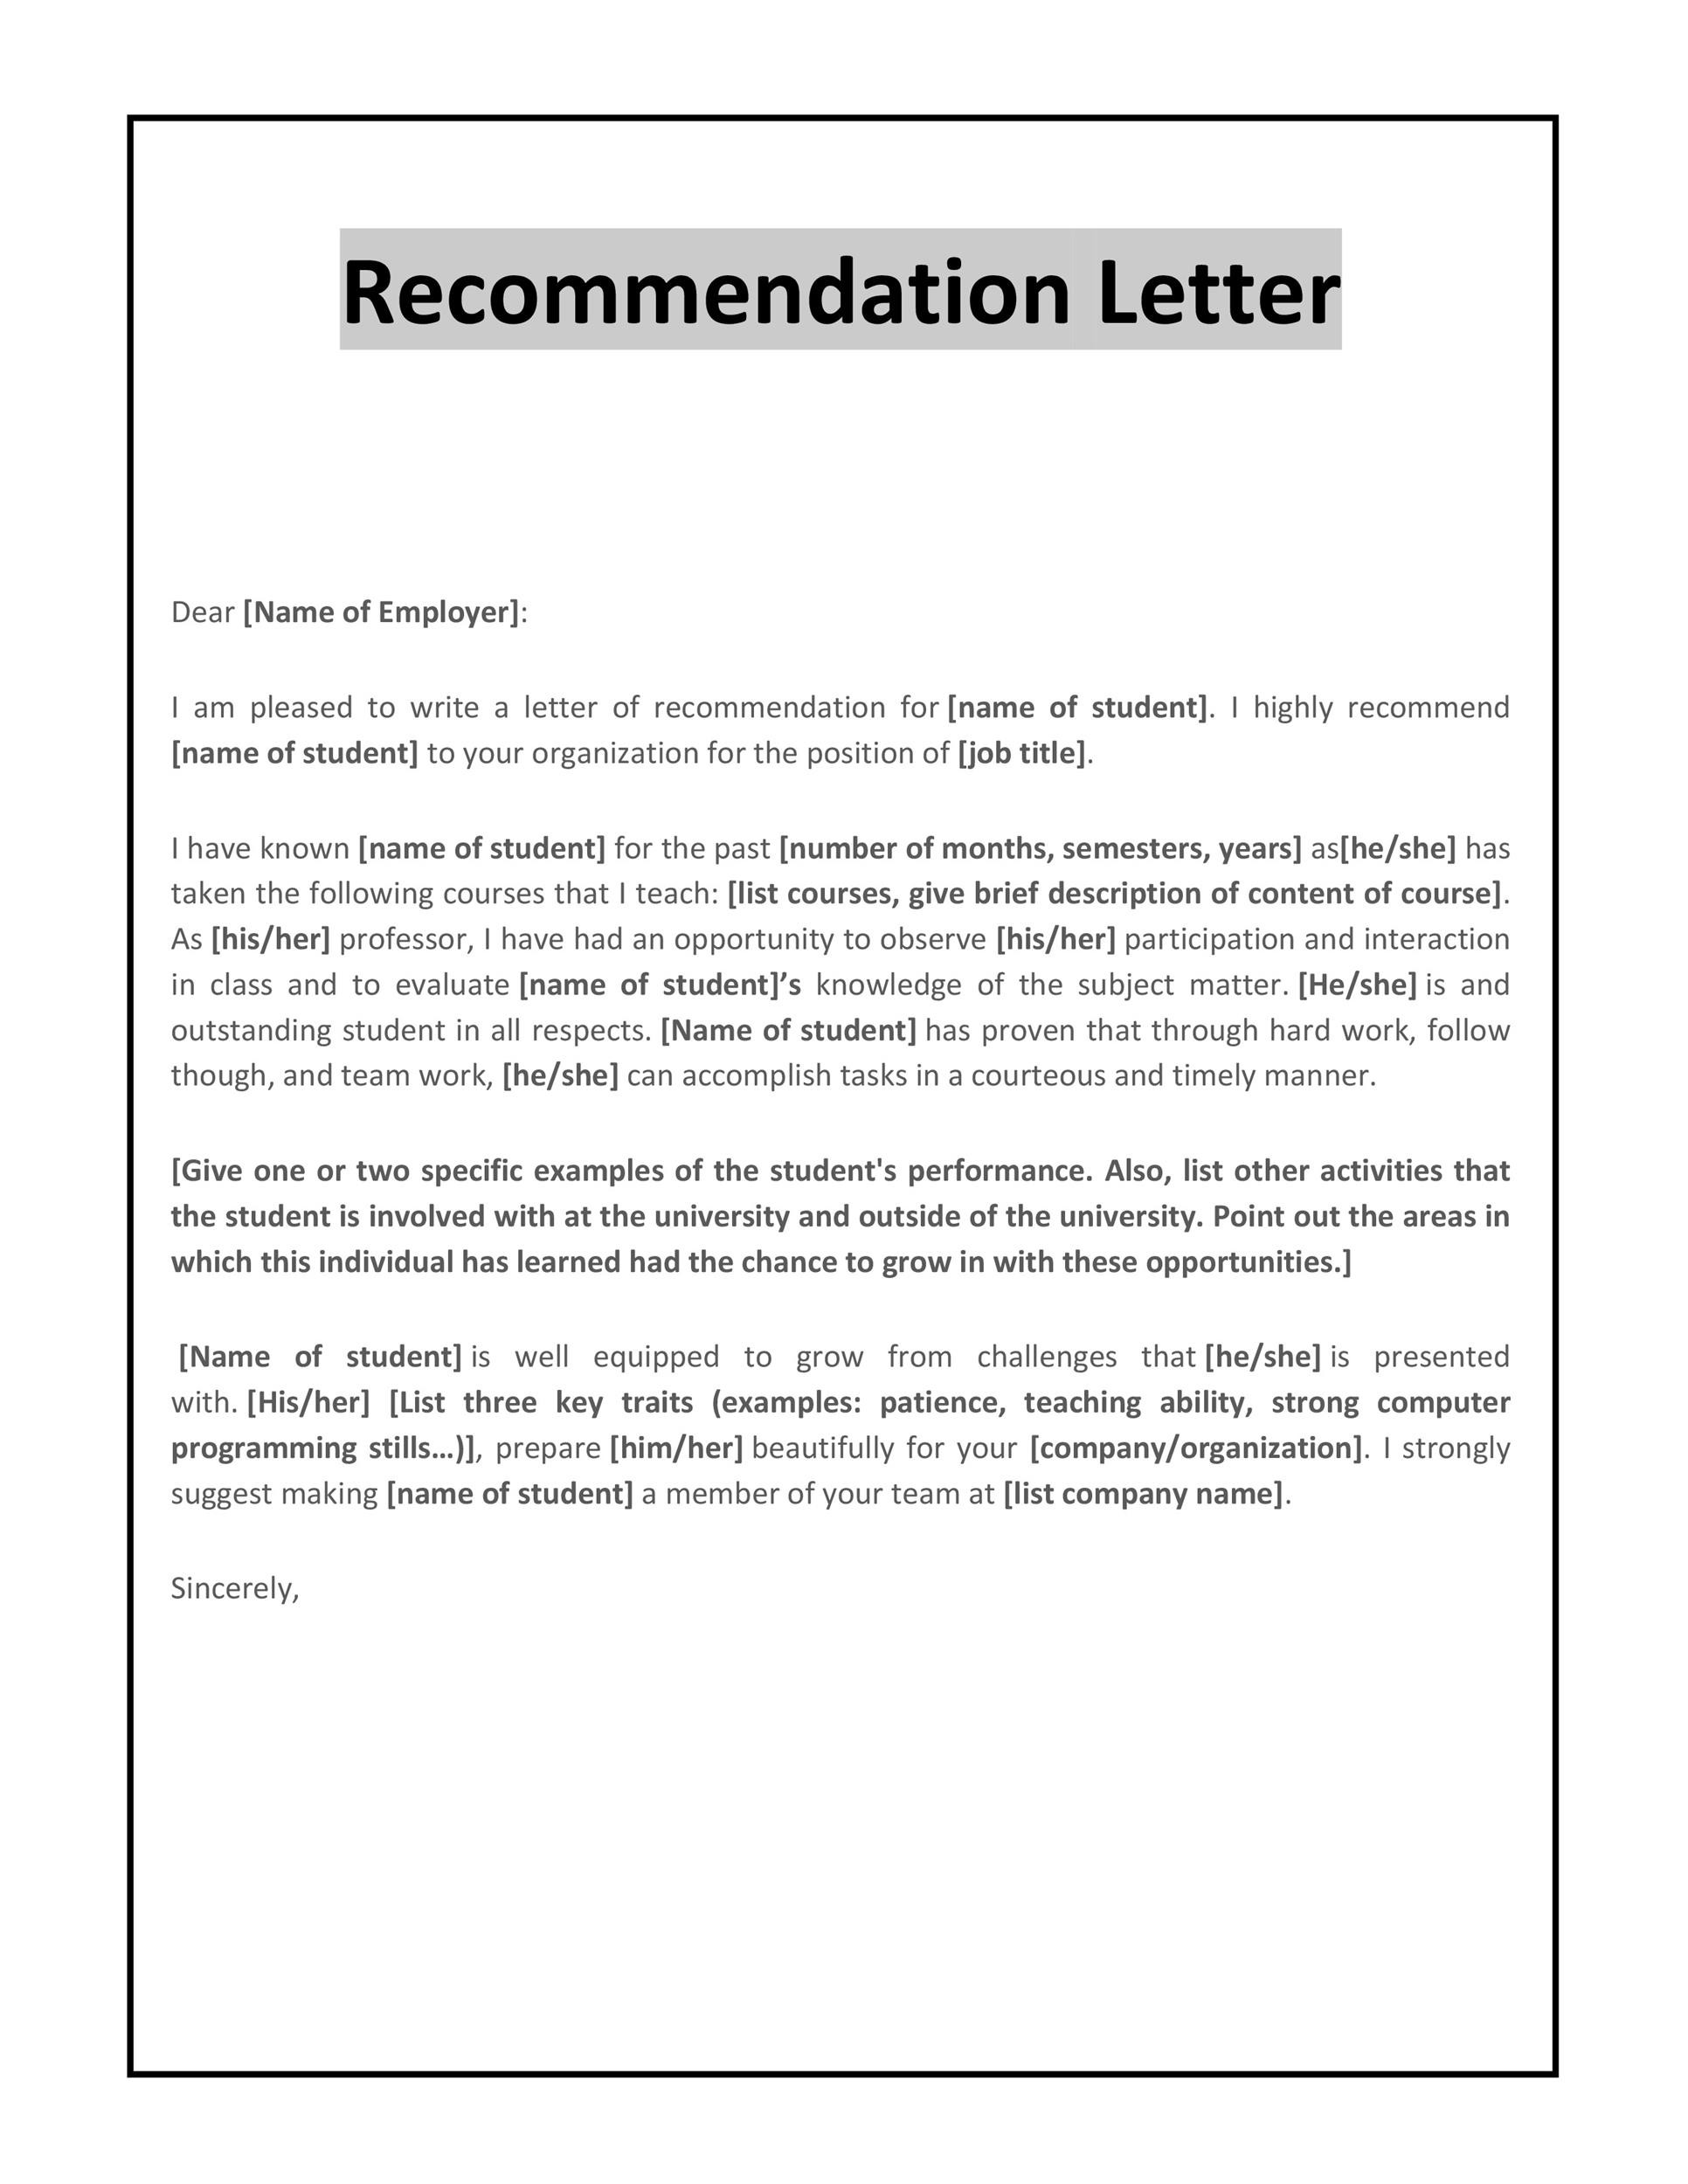 Writing a letter of recommendation for a medical student